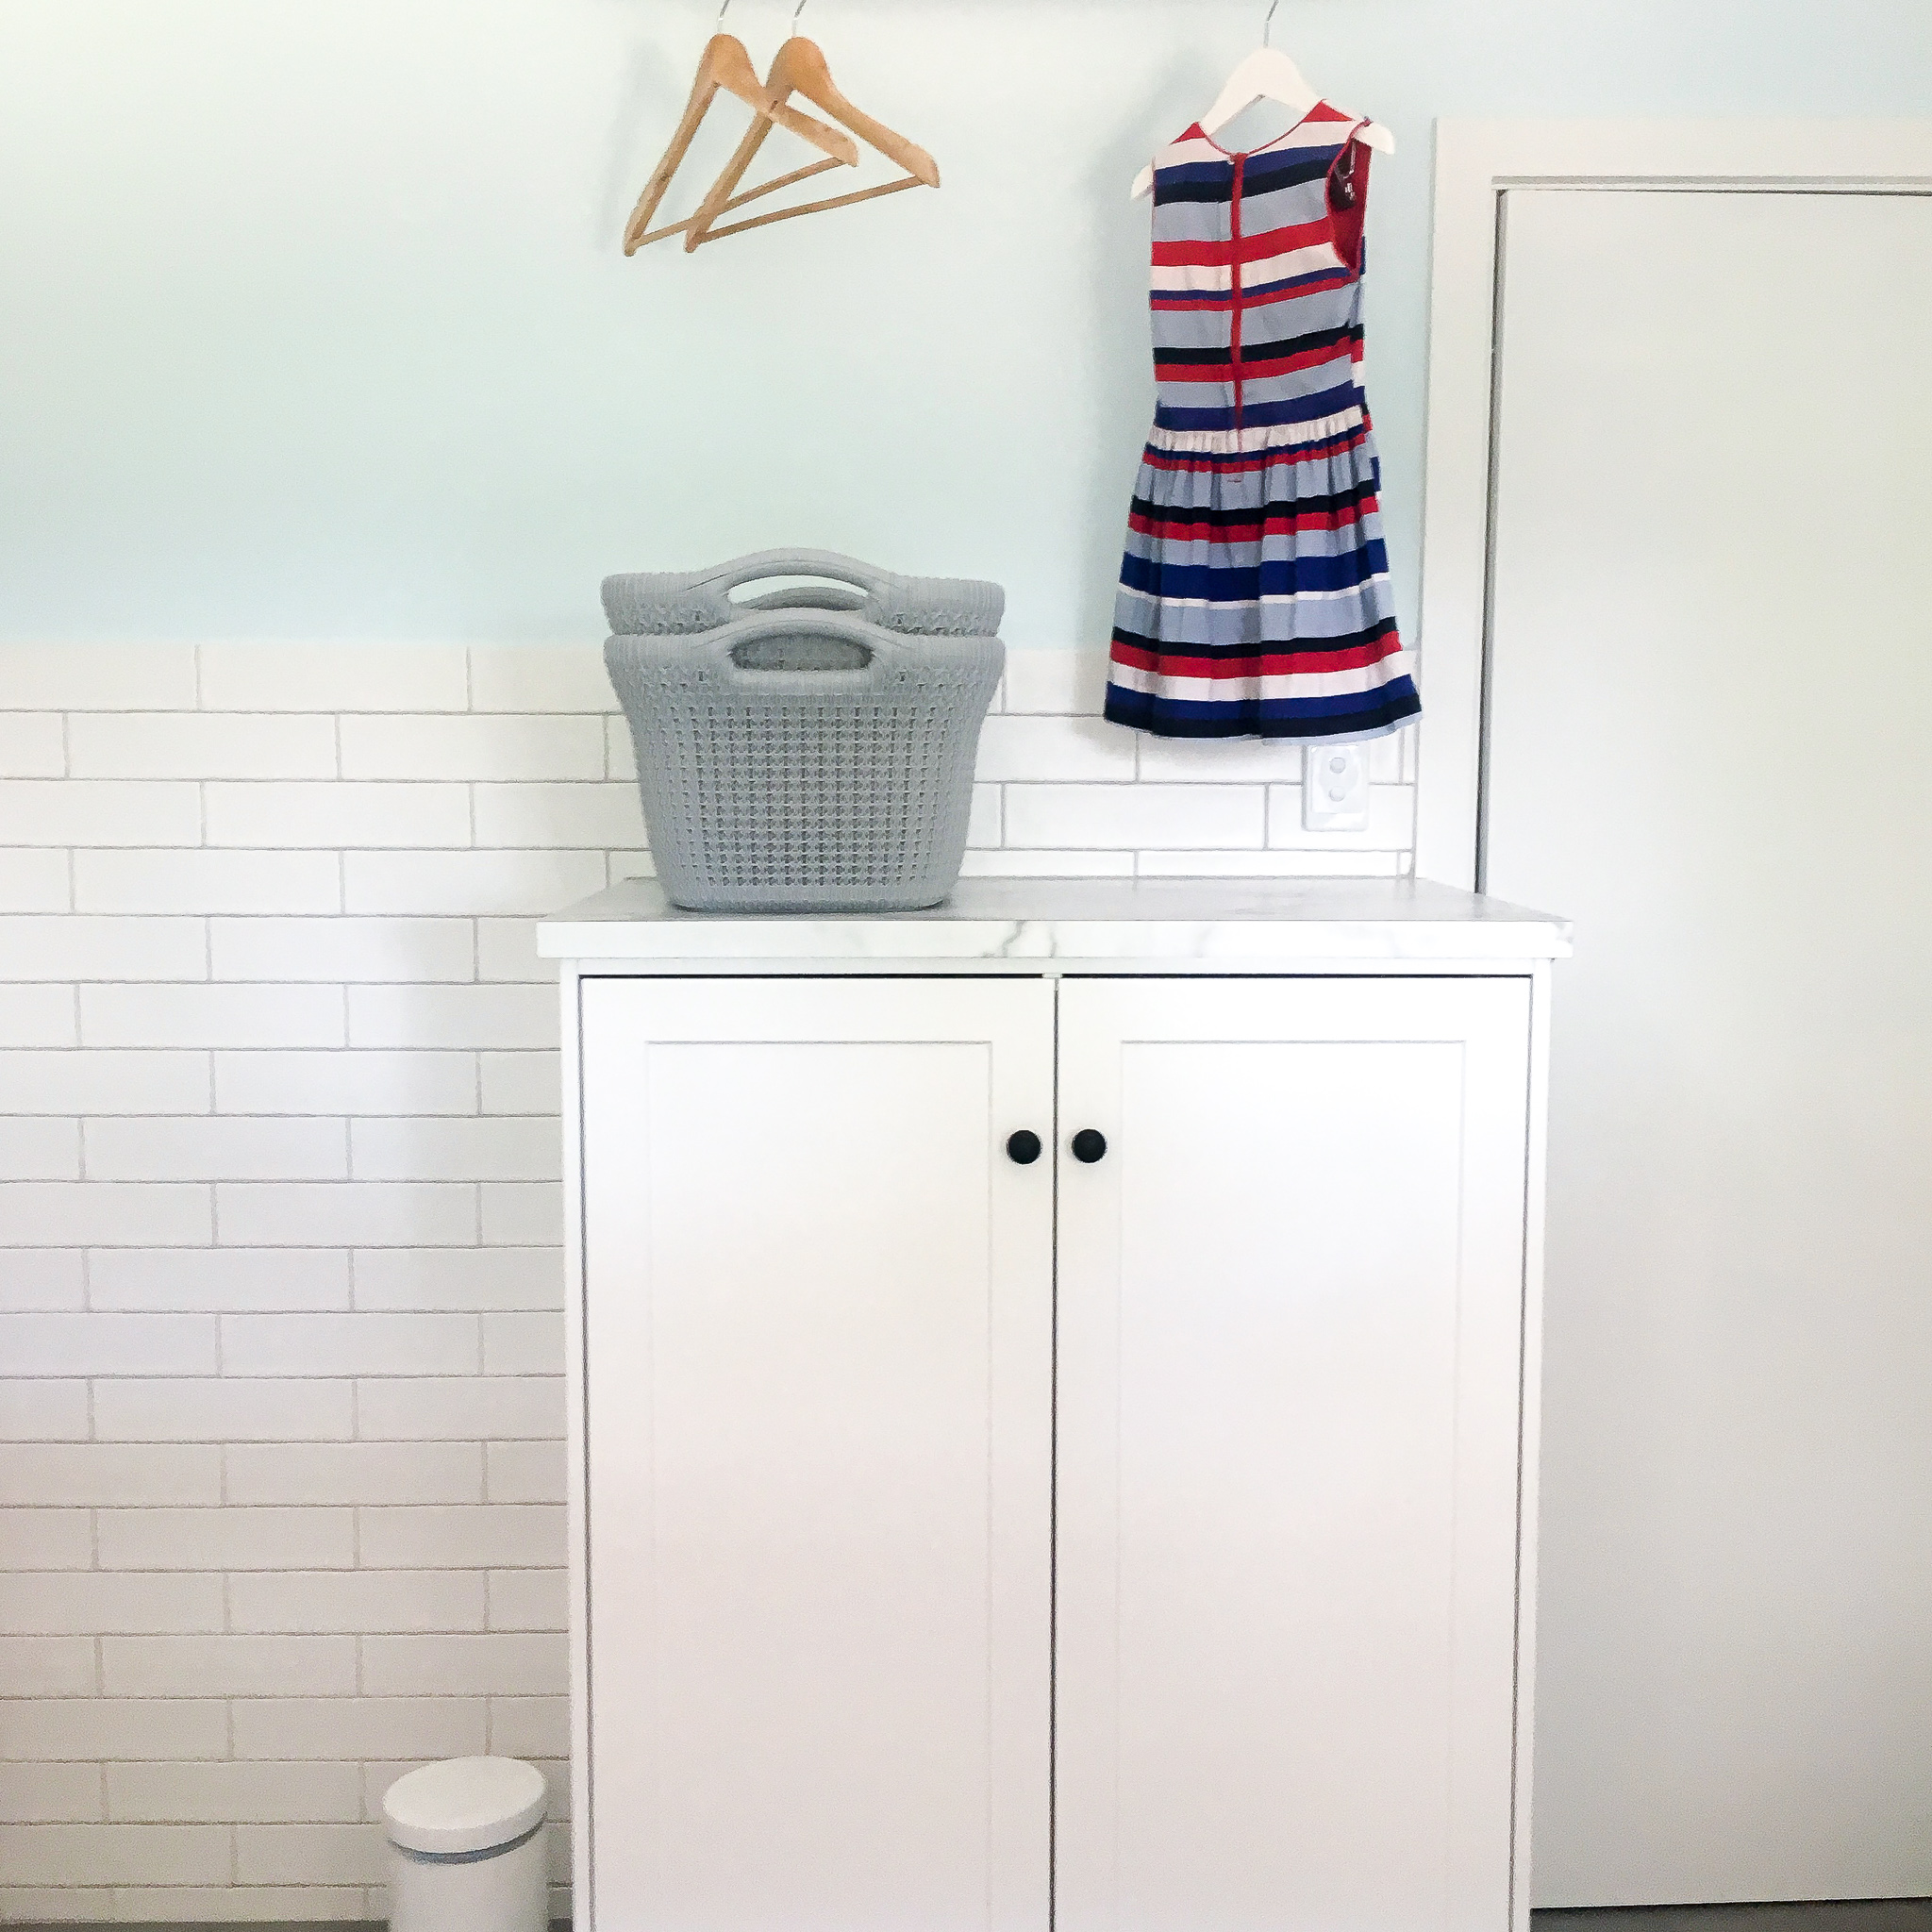 Laundry & Bathroom Renovation After: laundry sorting system hidden behind doors for when used as a guest bathroom - The Organising Bee